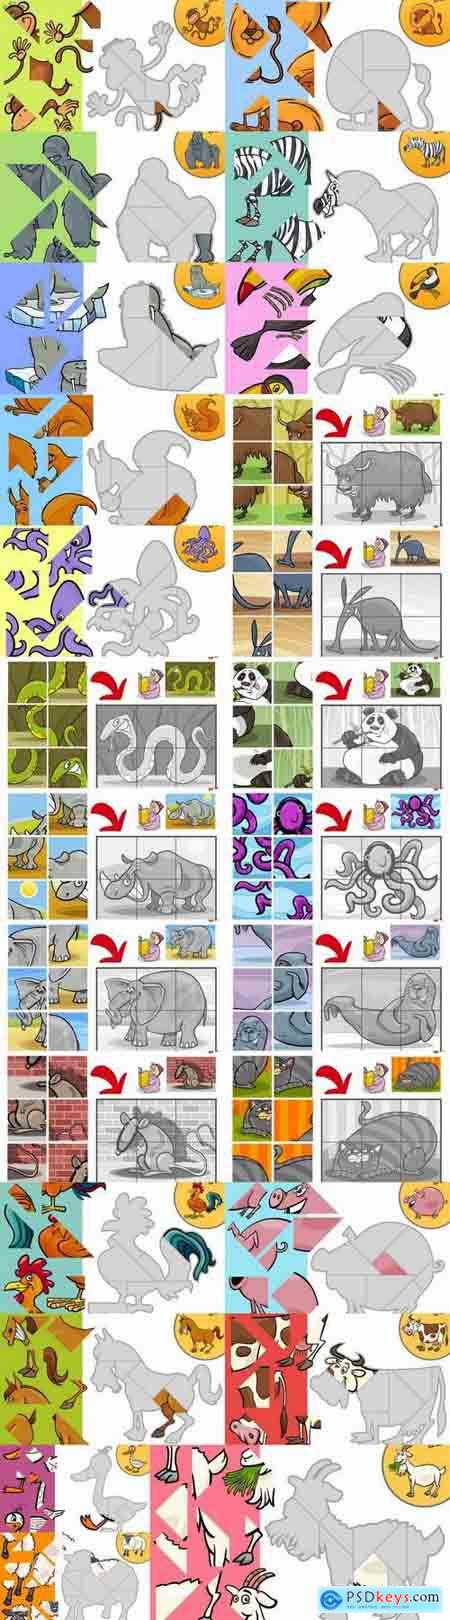 Children's conundrum puzzle illustration animal baby book 25 EPS